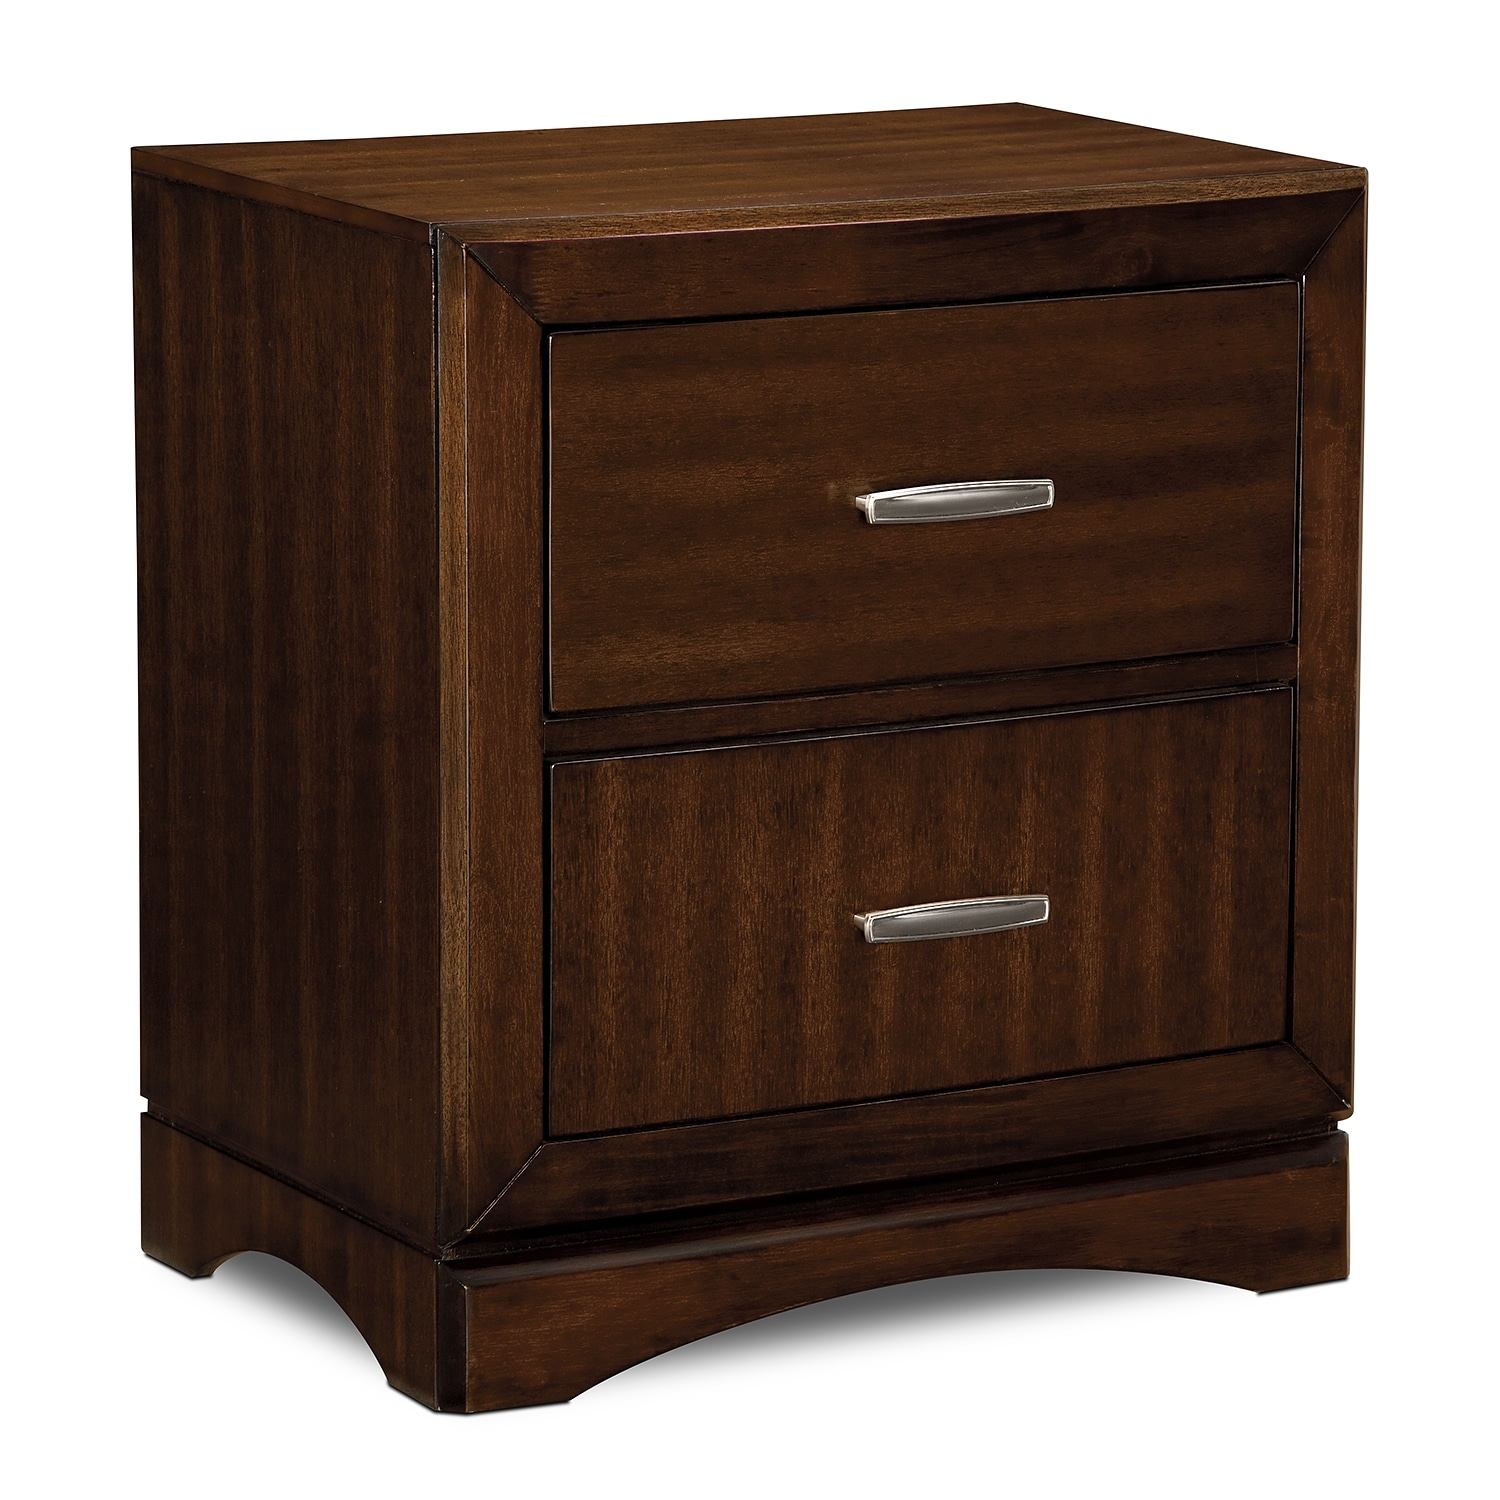 Furniture Toronto Com Toronto Nightstand Pecan